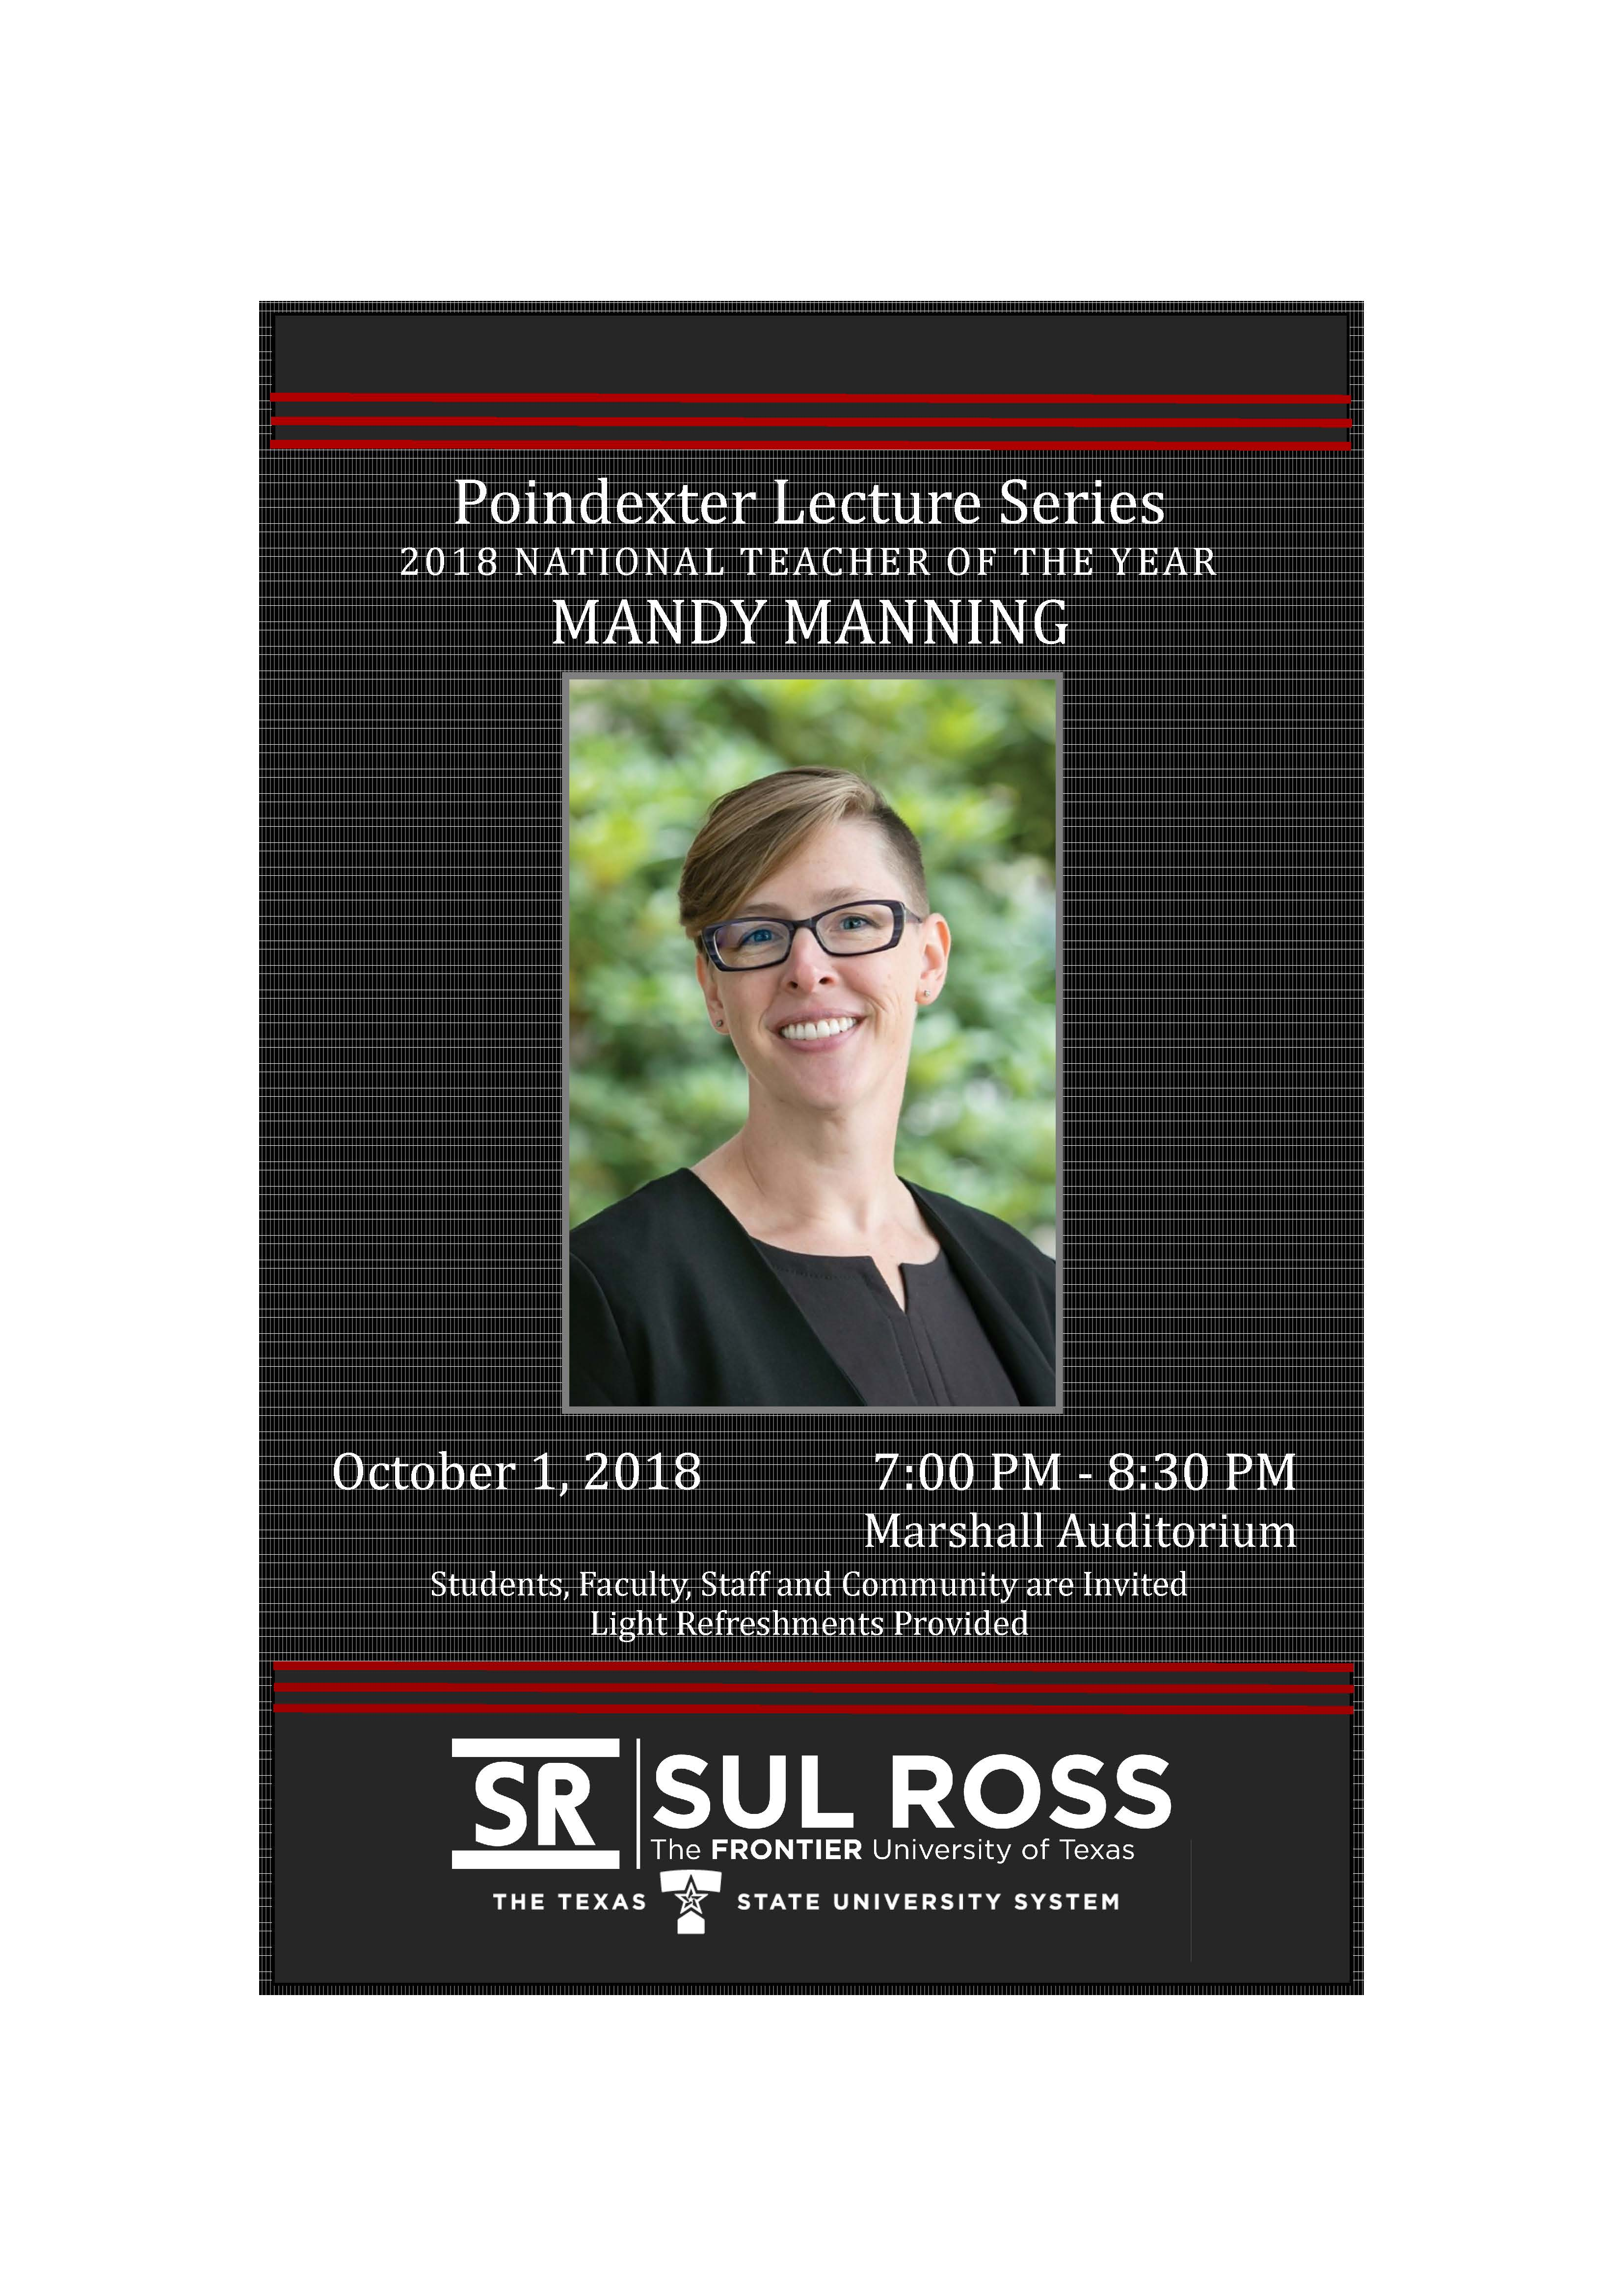 Educators Invited to Poindexter Lecture Series 2018 NATIONAL TEACHER OF THE YEAR with MANDY MANNING